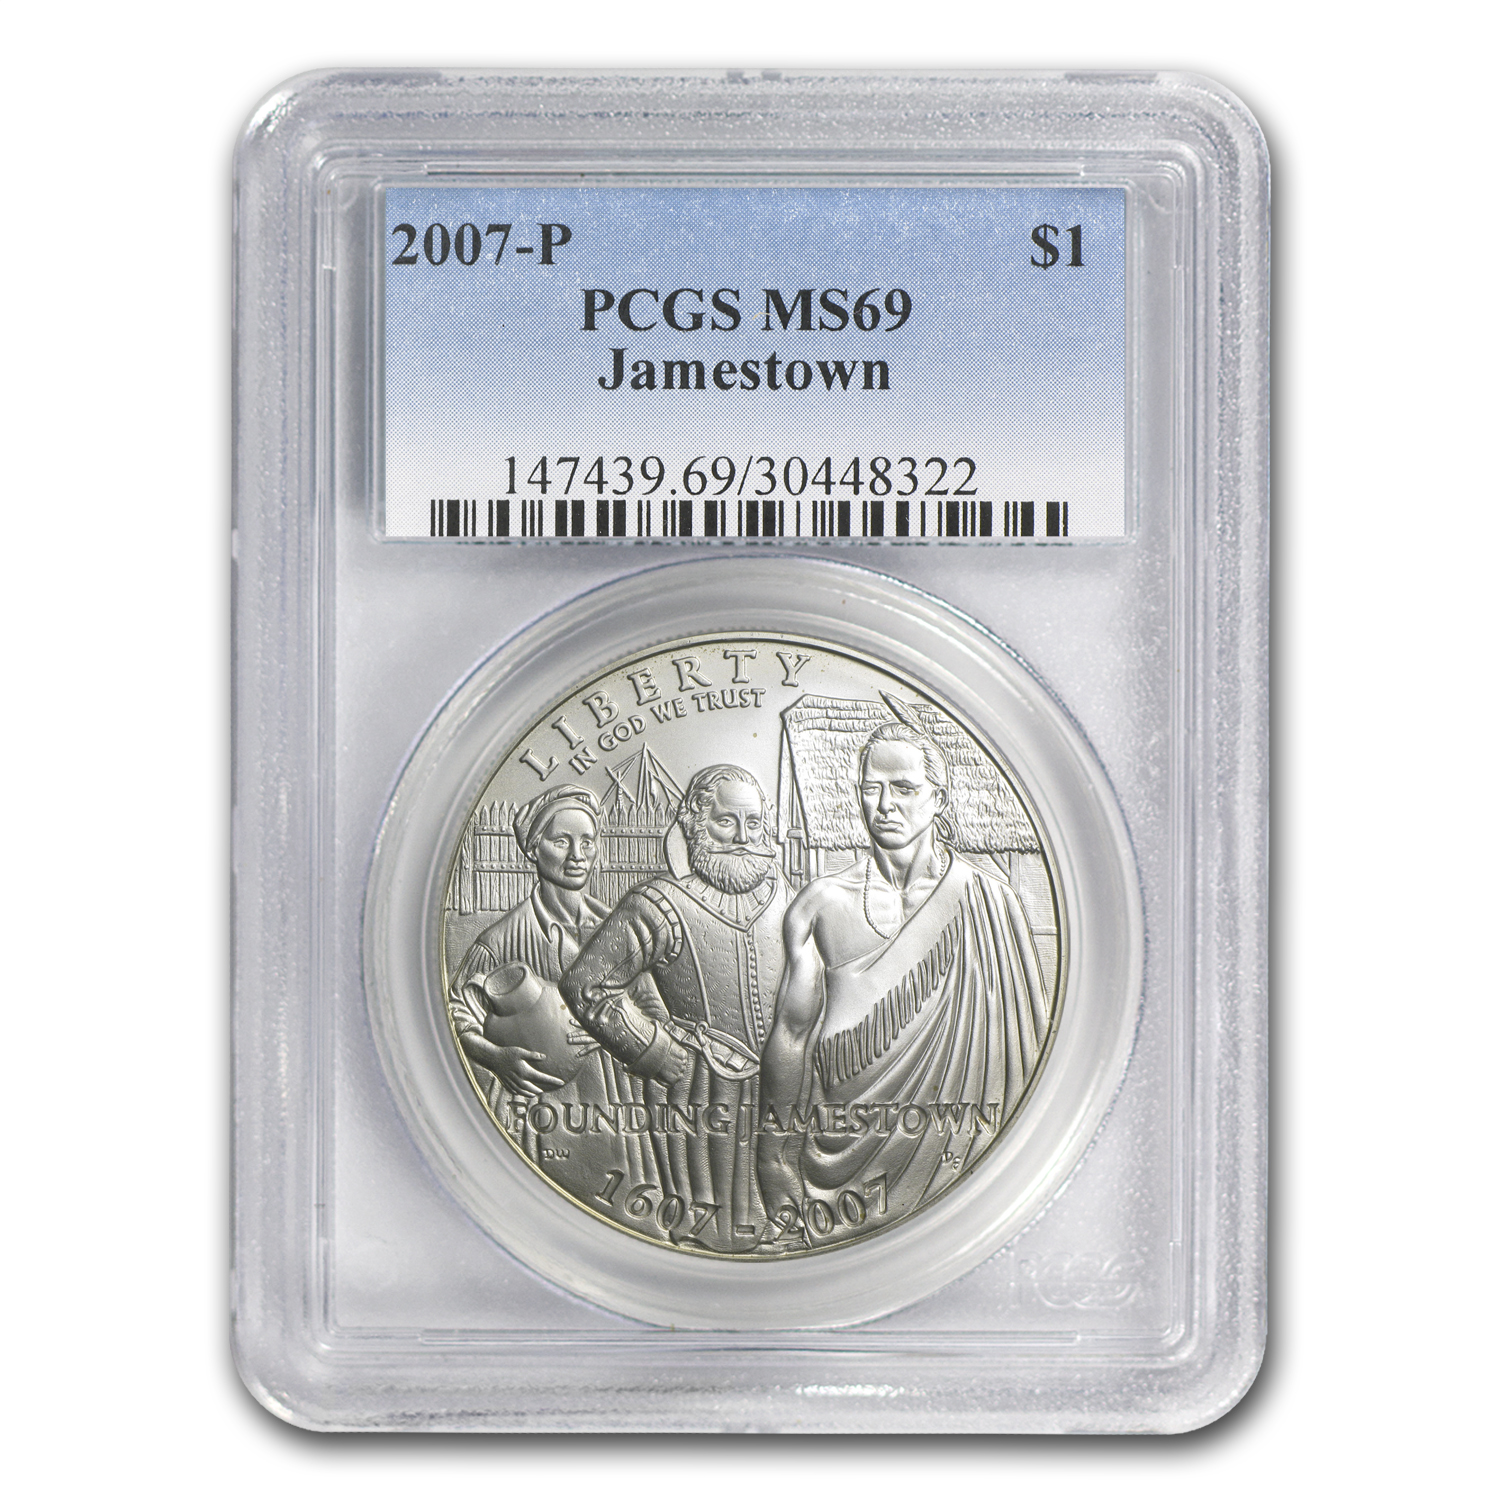 2007-P Jamestown 400th Anniv $1 Silver Commem MS-69 PCGS